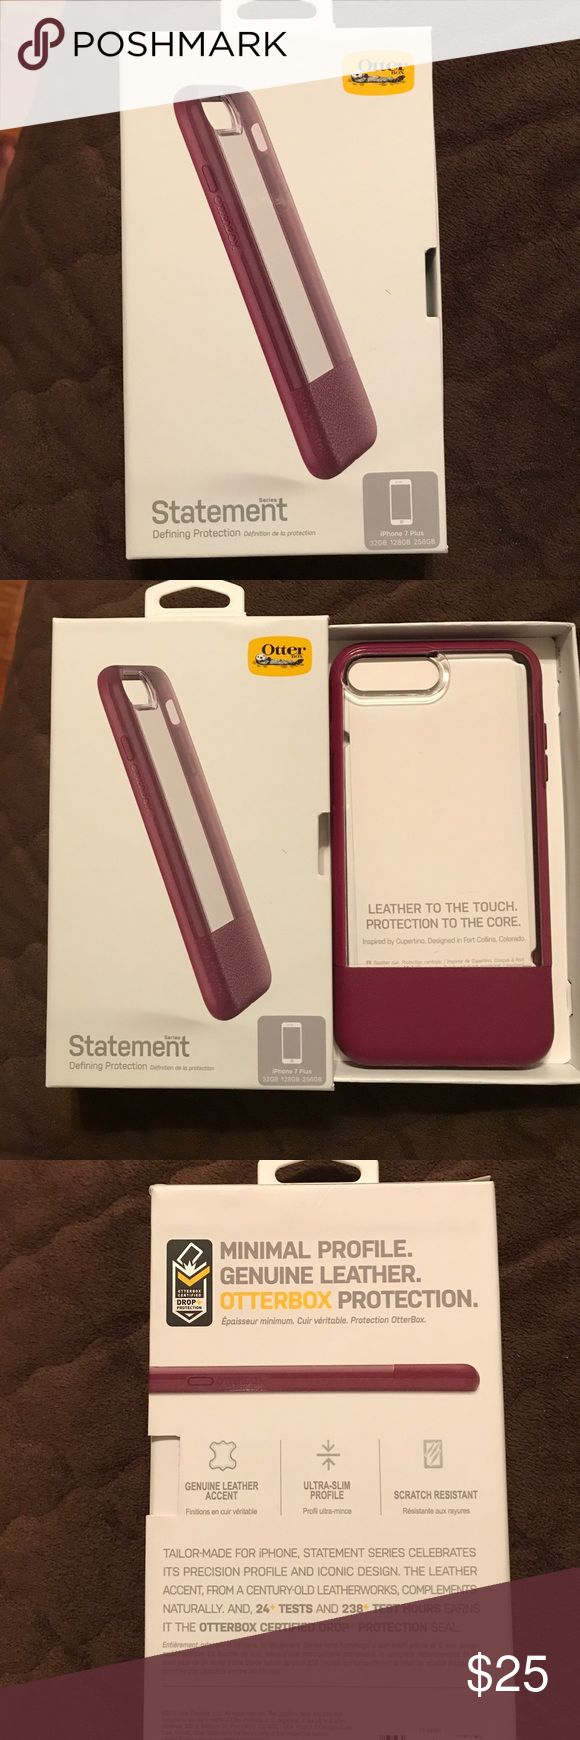 iPhone 7 plus Otter Box Case iPhone 7 Plus Otter Box Case with genuine leather accent. Only used the case once. Still in great condition. OtterBox Accessories Phone Cases